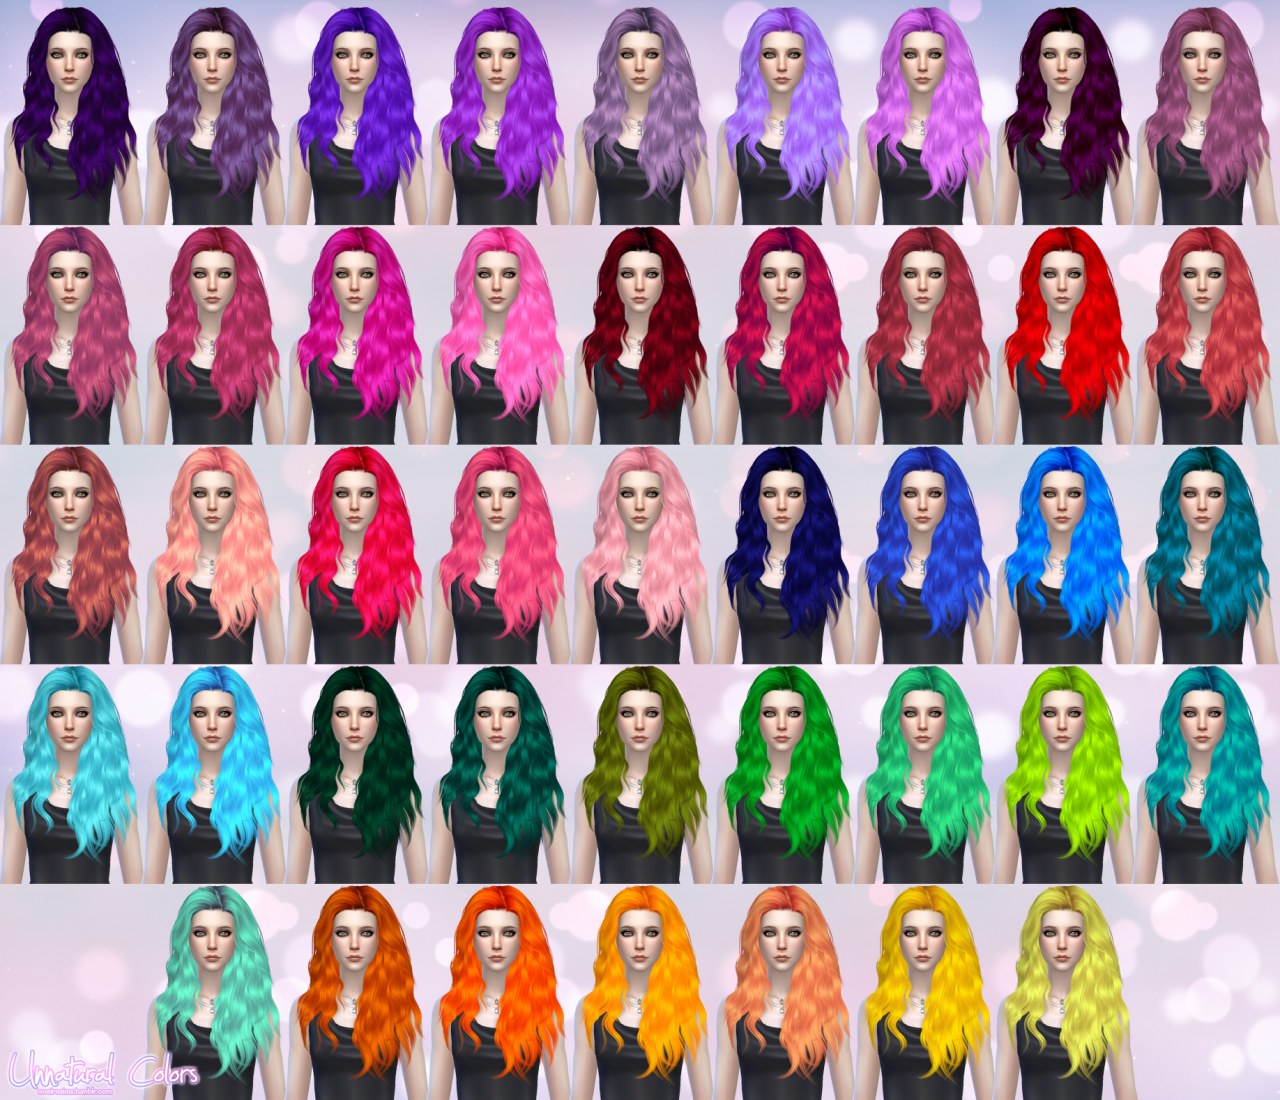 Stealthic Hair Retexture for Females by AveiraSims